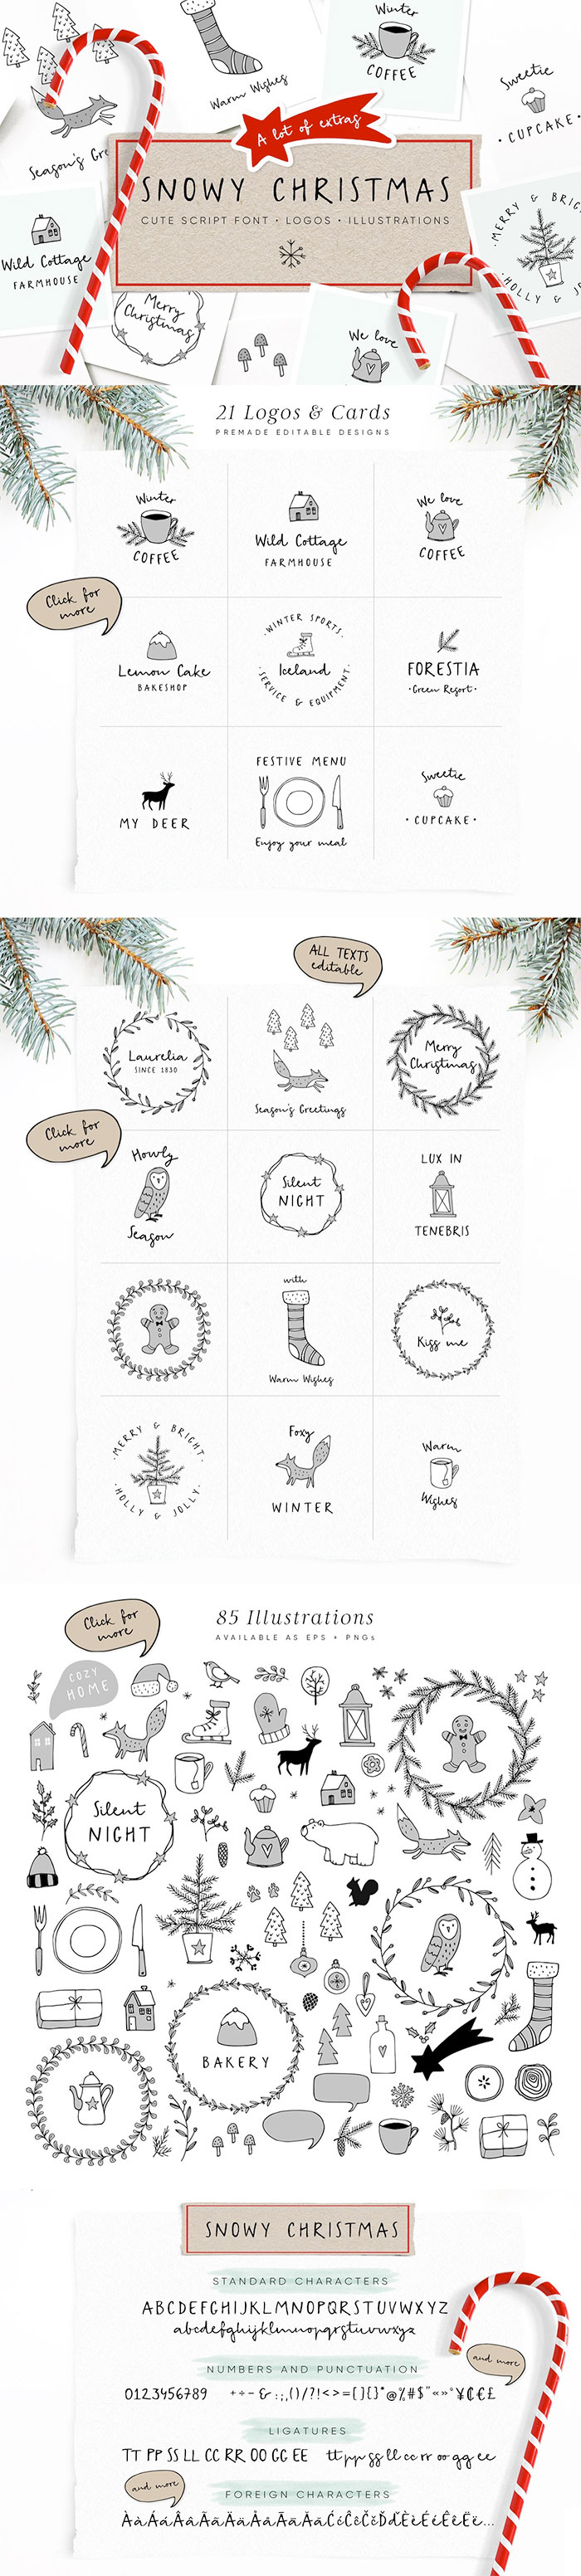 Snowy Christmas script font & logos - a cute script font with a bunch of winter inspired vector illustrations and pre-designed logos and greeting cards.A roundup of Christmas and holiday graphics and fonts for your holiday blog posts and social media posts!